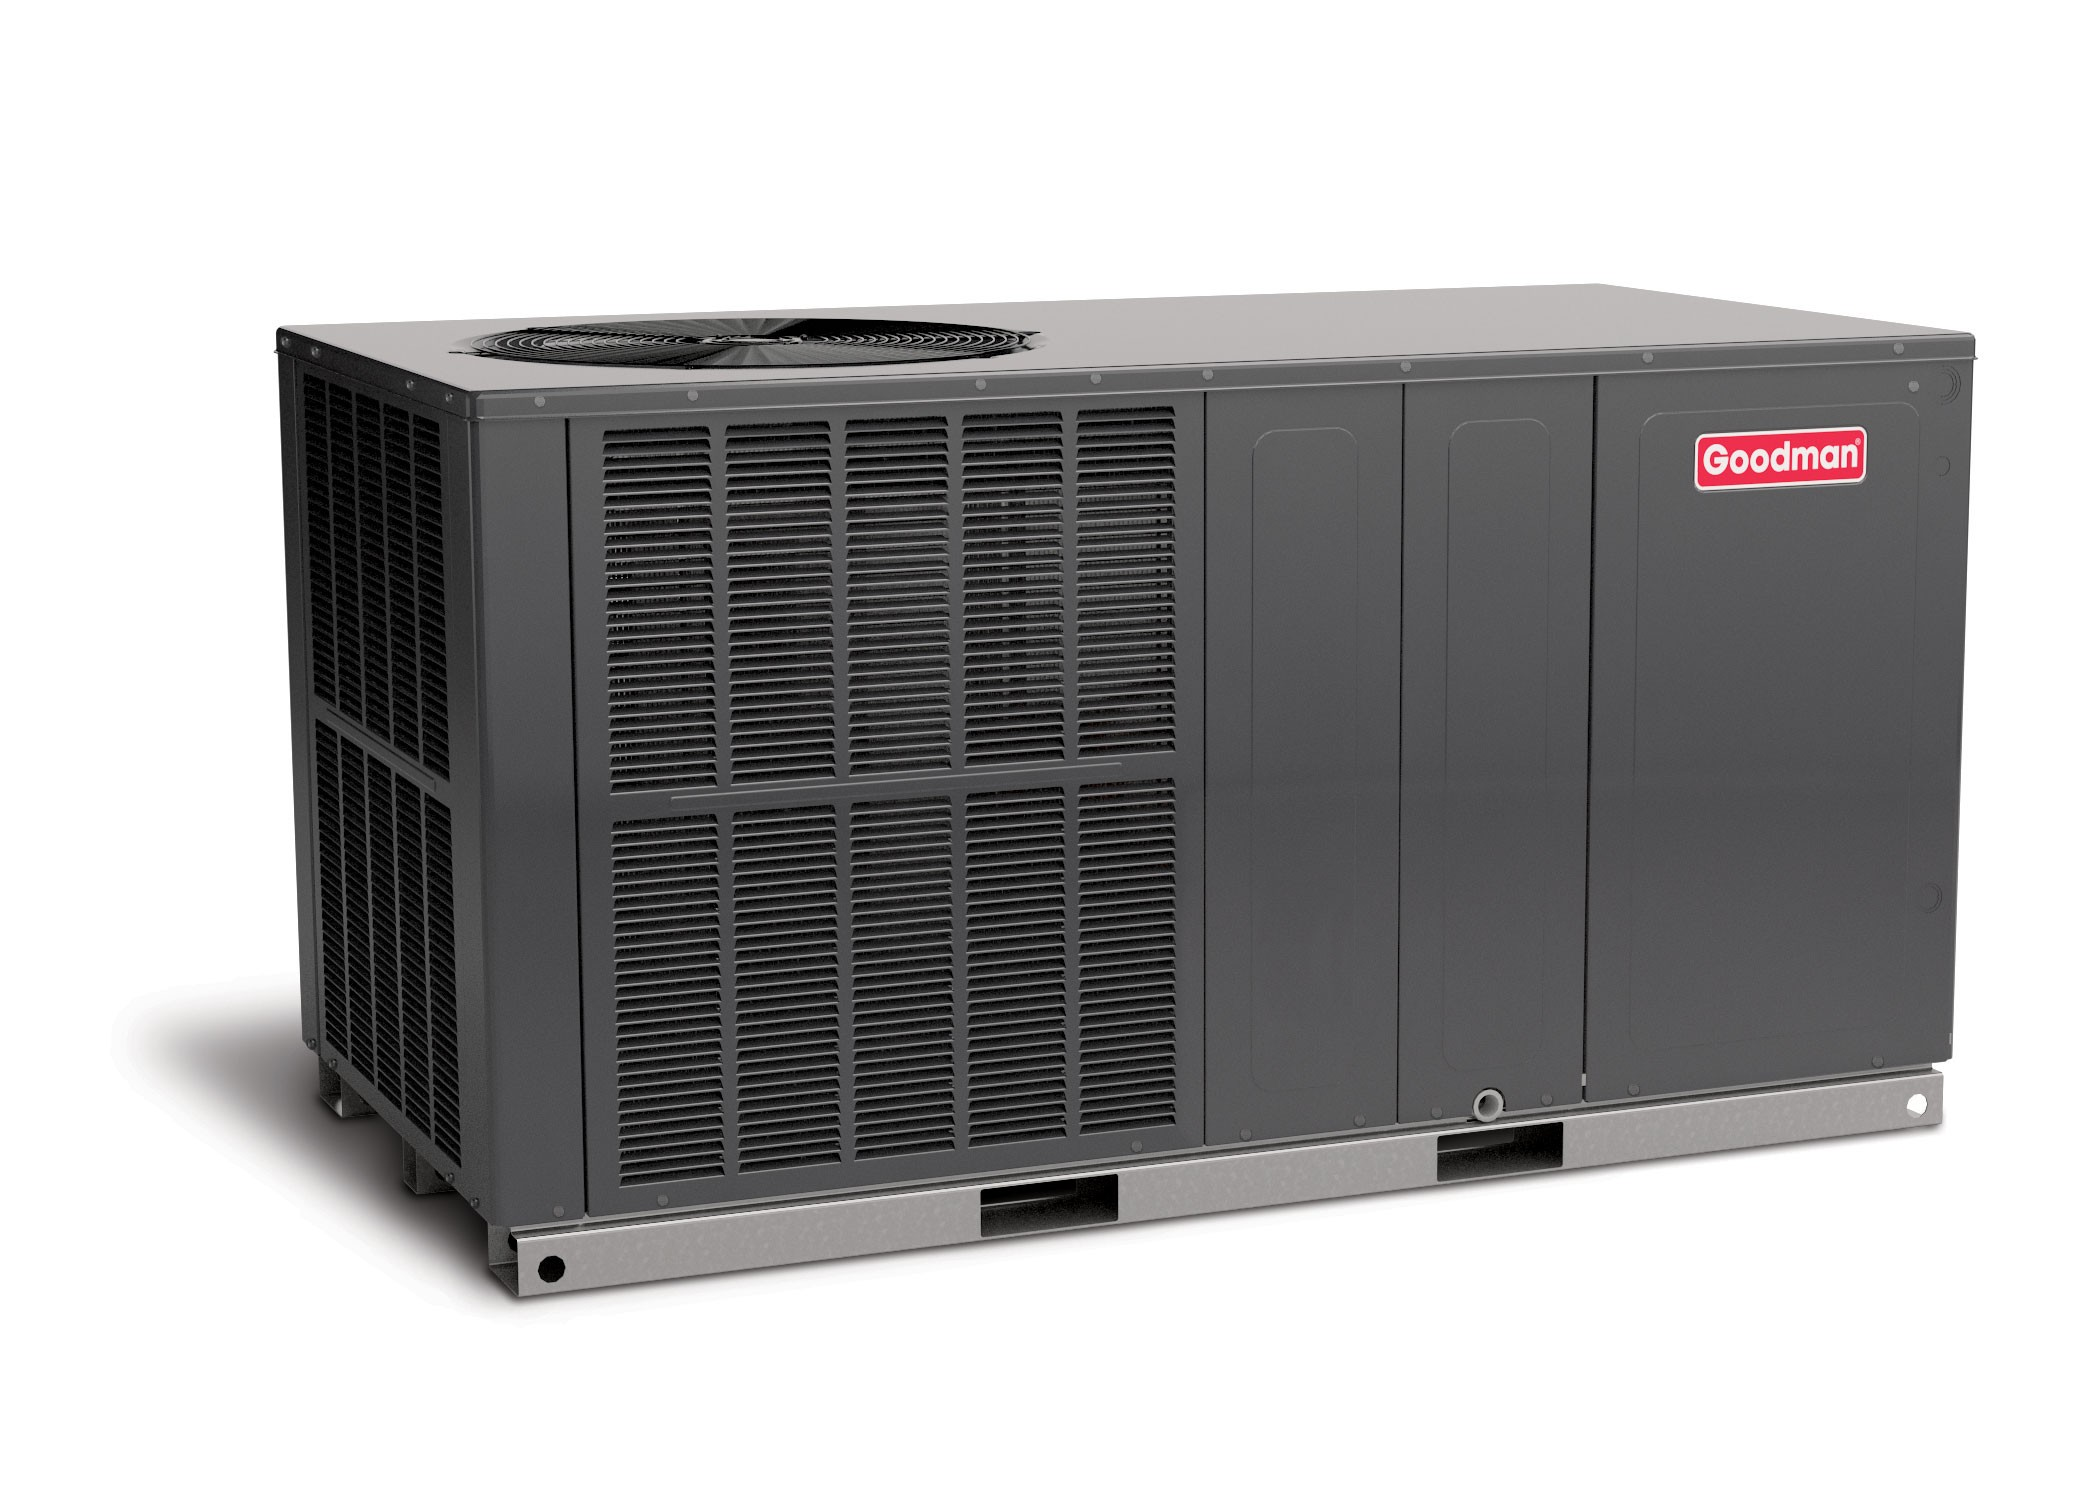 3 Ton Air Conditioning : Ton goodman seer r a air conditioner package unit